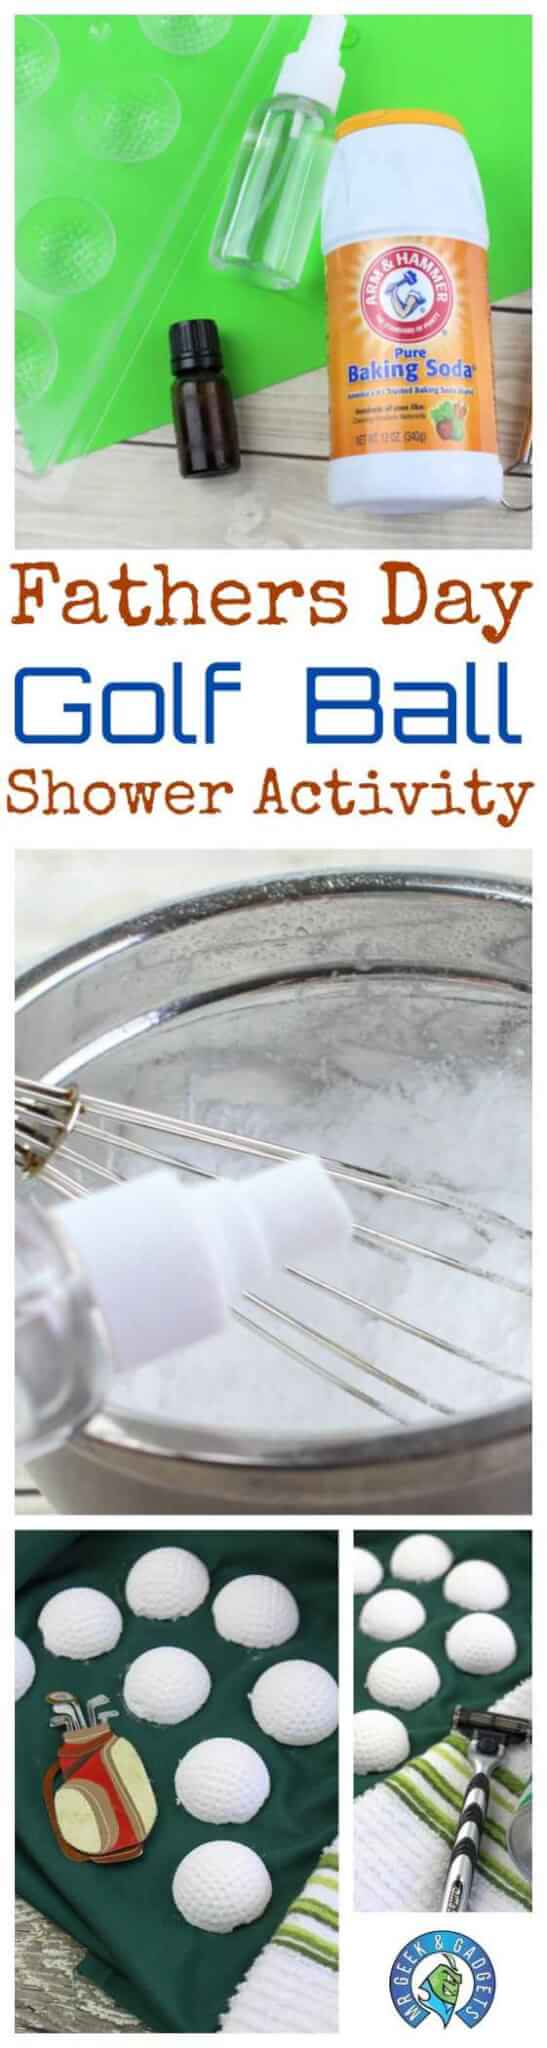 fathers-day-golf-ball-shower-activity | Fathers DayGolf Ball Shower Activity